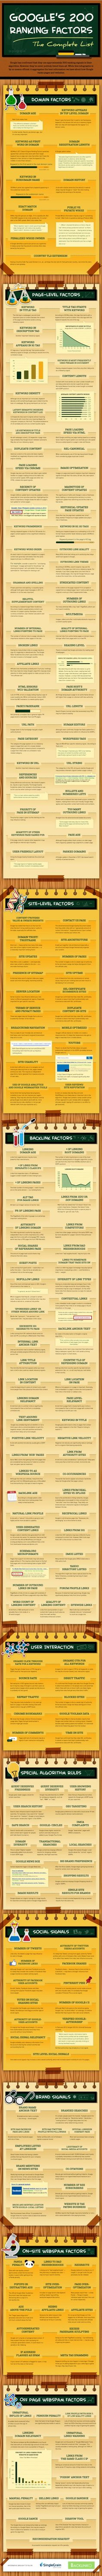 200 Must Know Facts on SEO